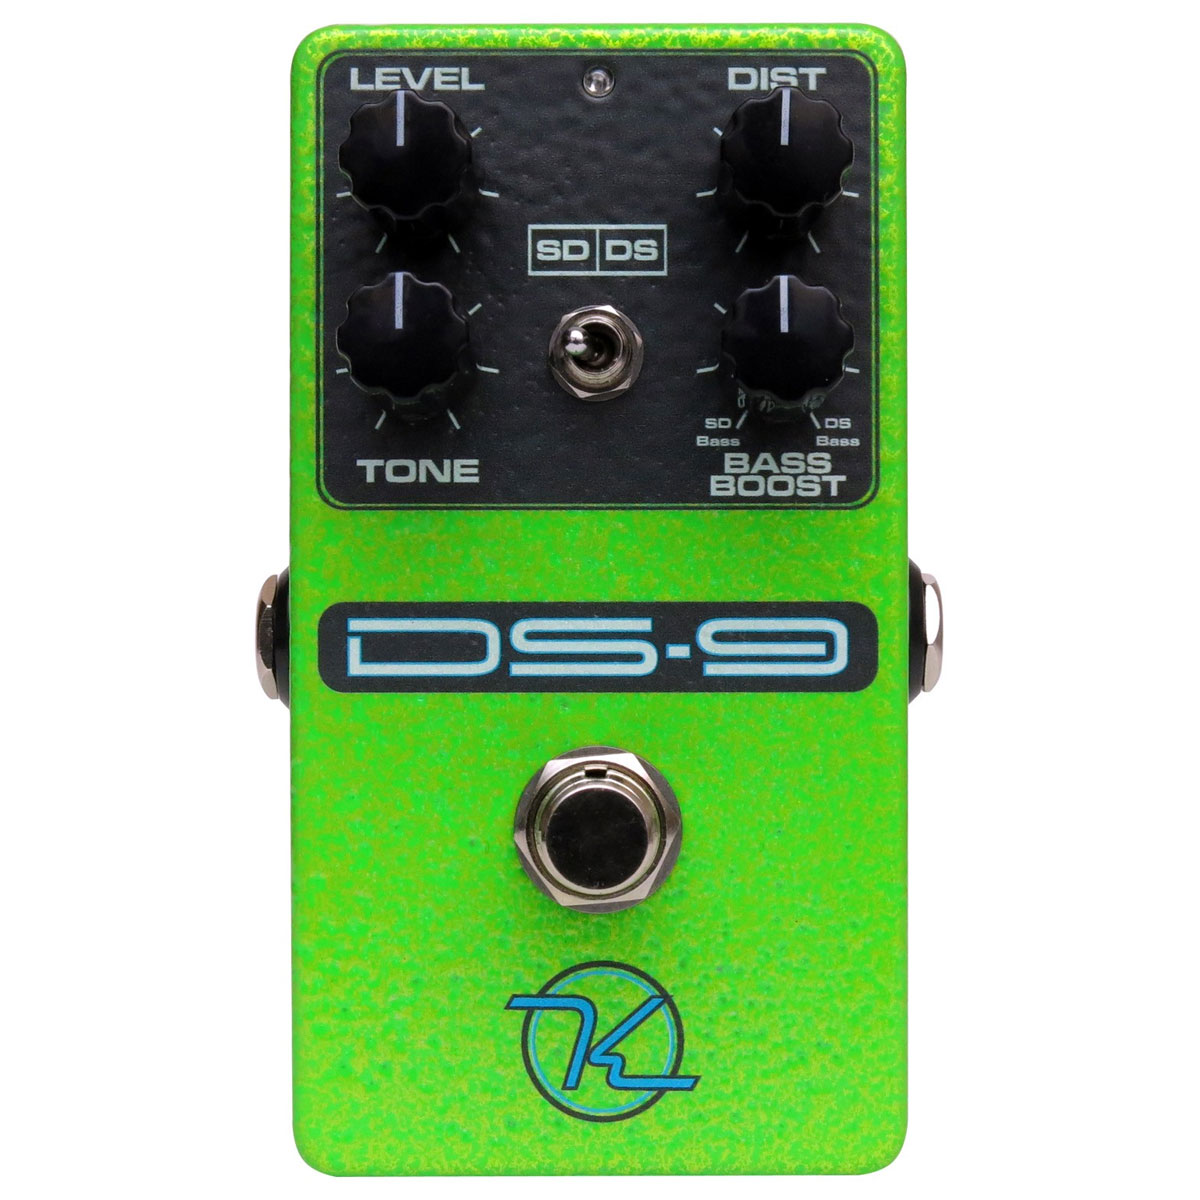 Keeley DS-9 - Pedal overdrive guitarra eléctrica